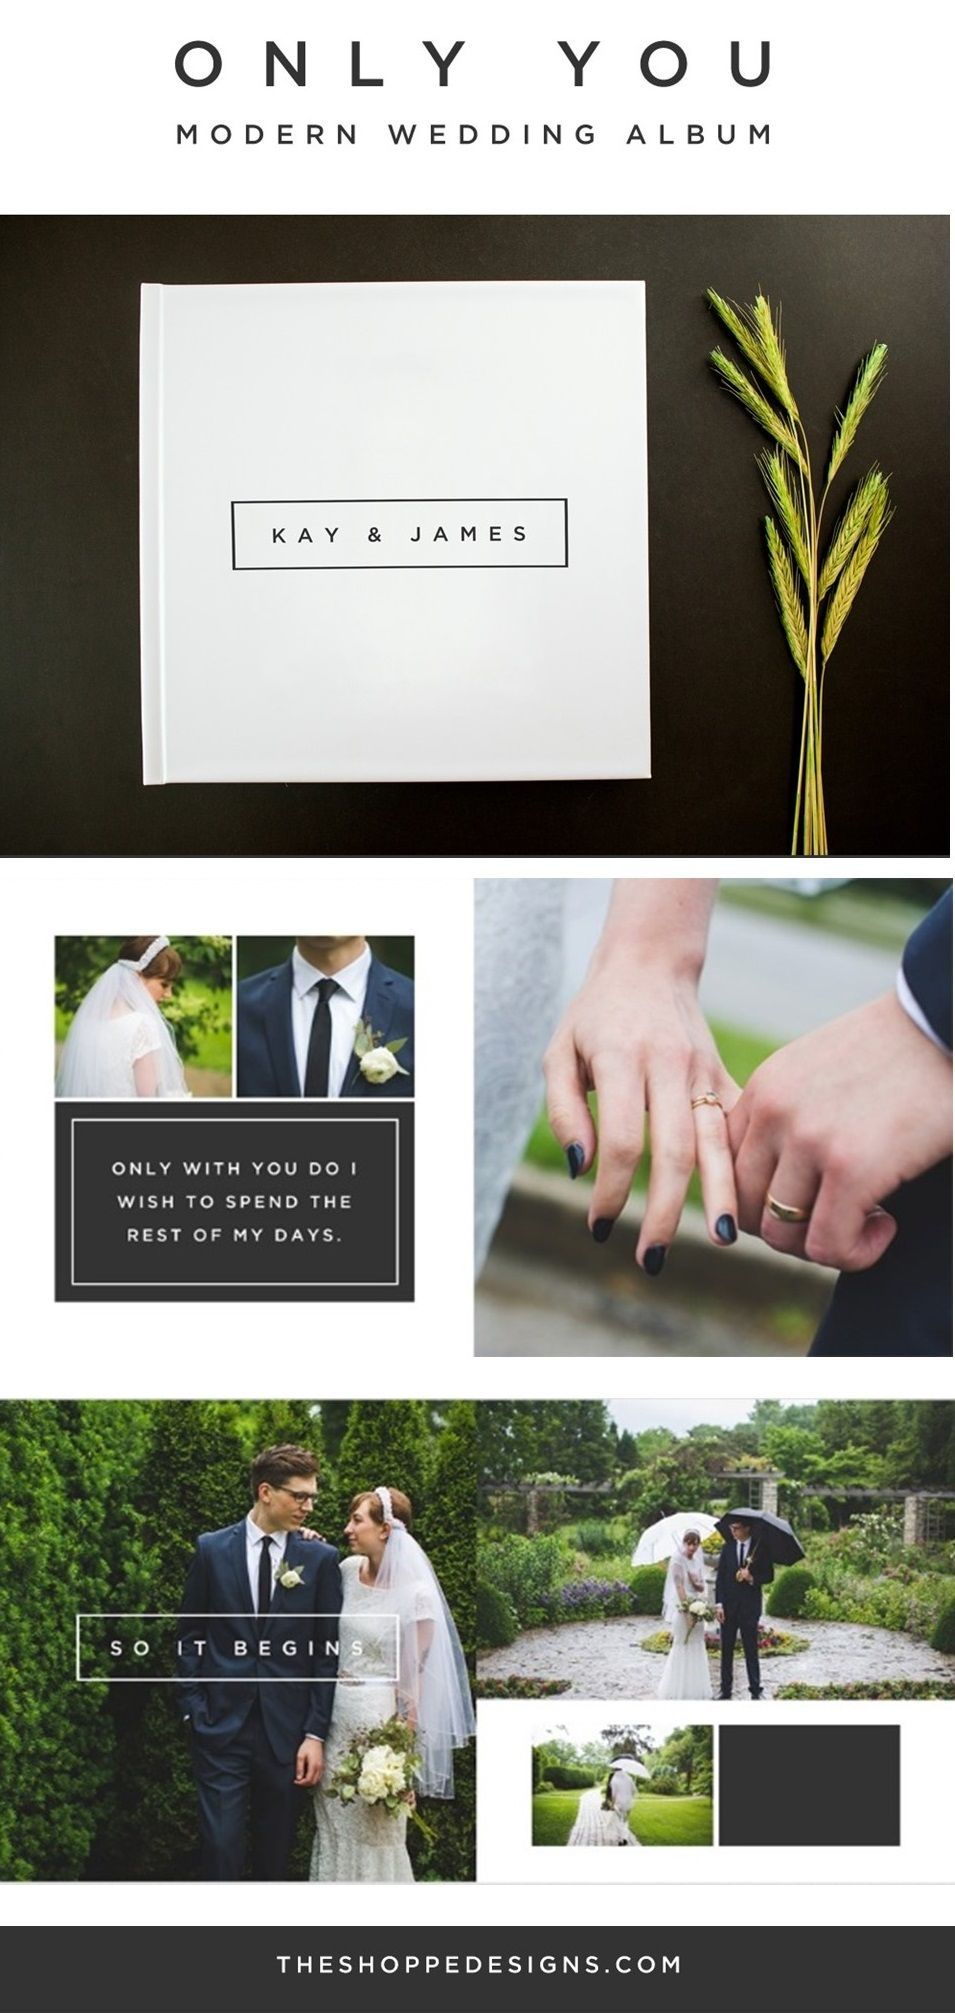 Wedding Album Template A Clean Modern Wedding Album Design For Your Special Day Just Add In 2020 Wedding Album Templates Wedding Album Layout Wedding Album Cover